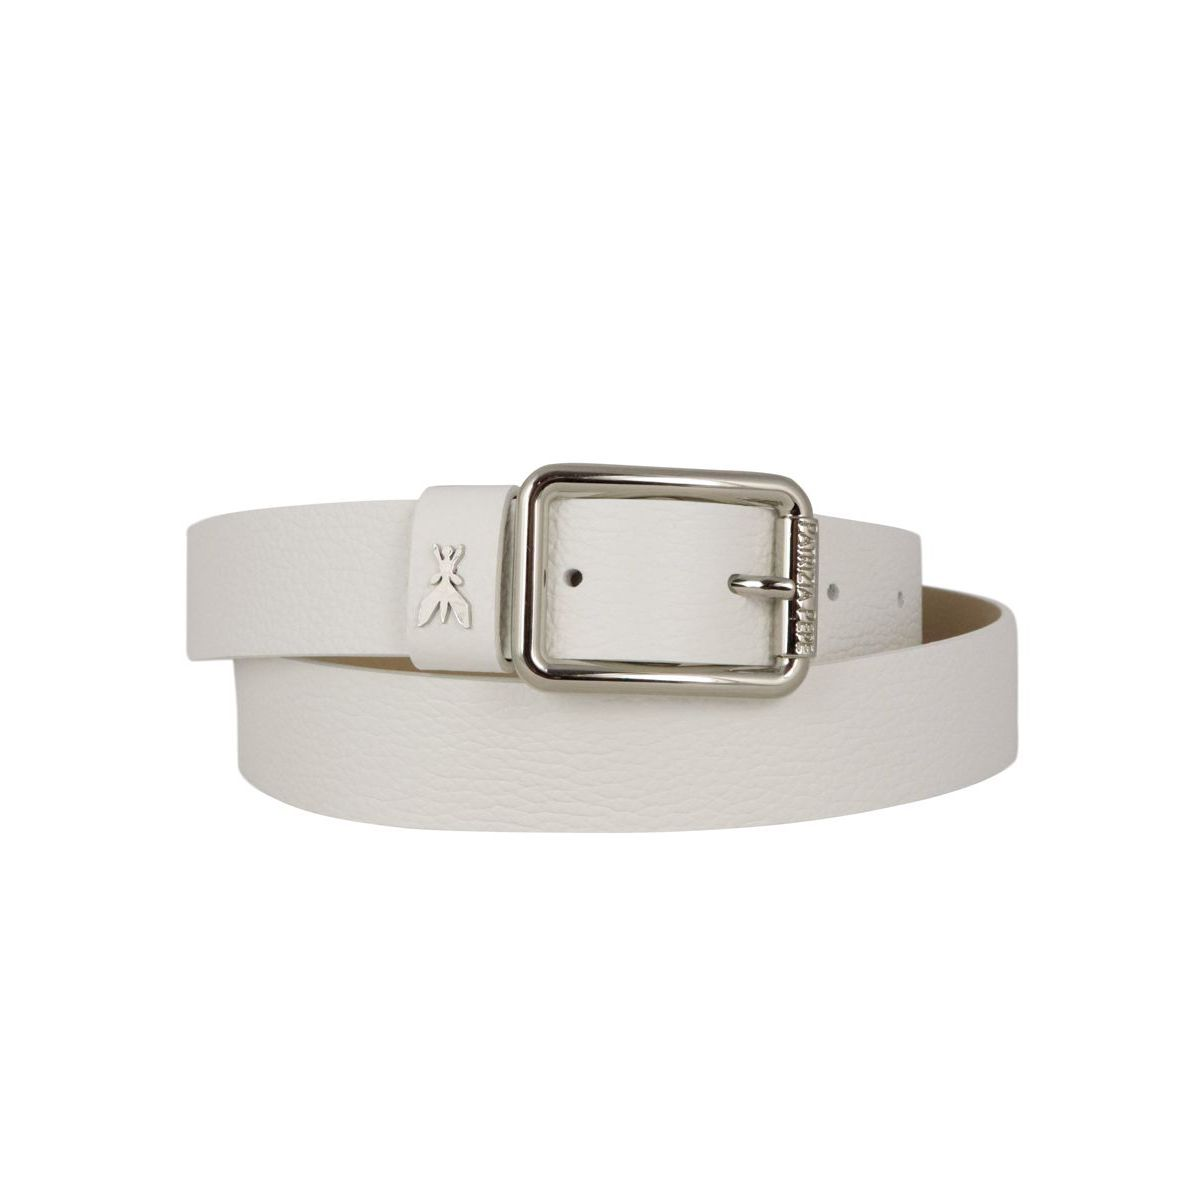 Leather belt with metal buckle and applied logo White Patrizia Pepe